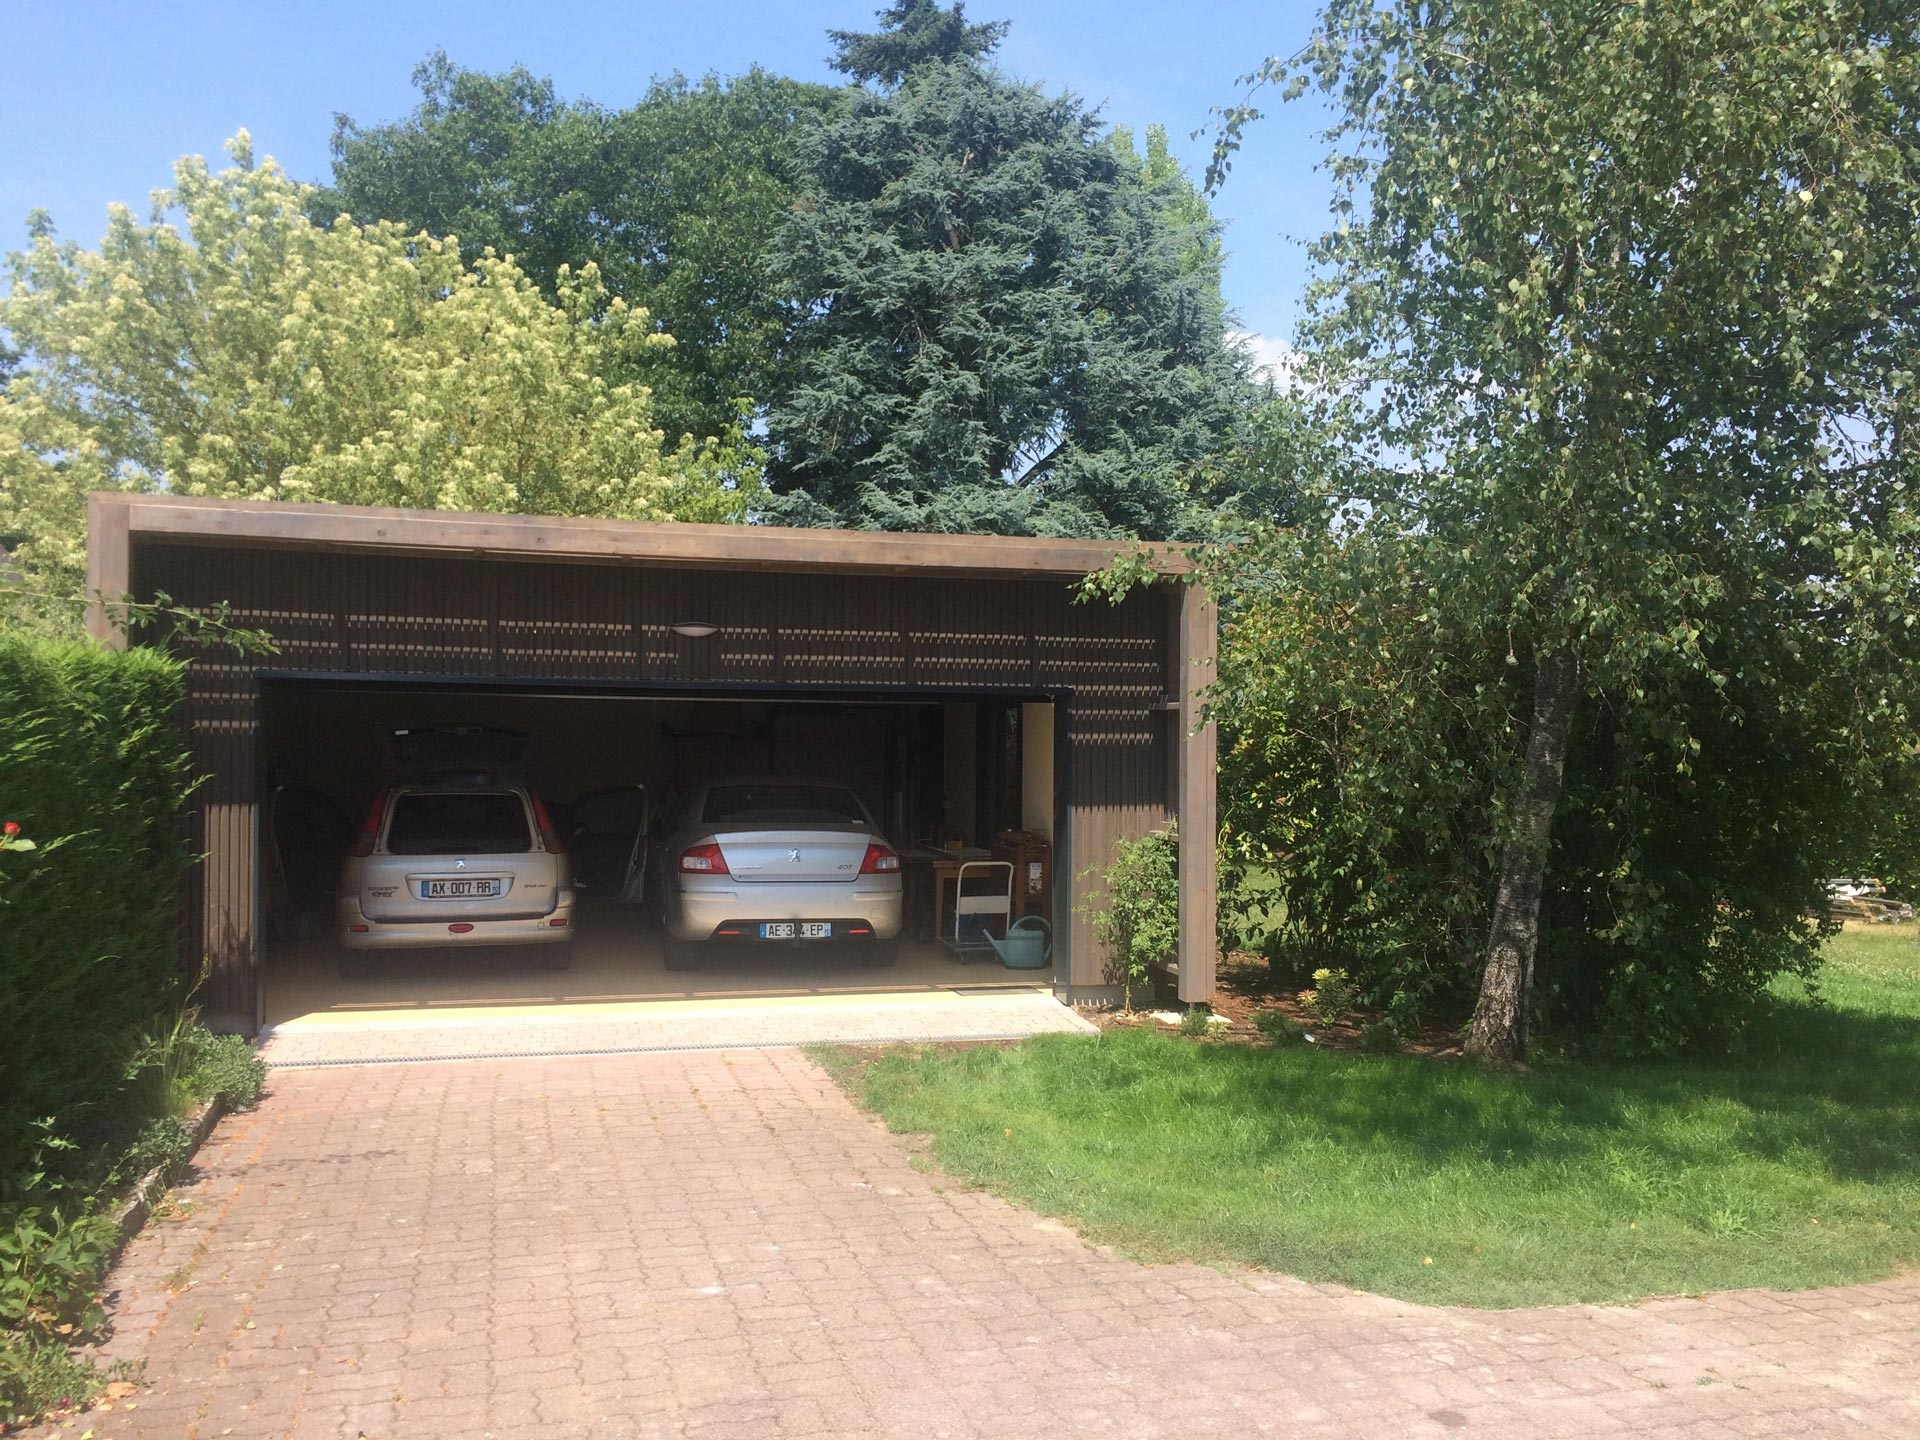 Extension garage toit plat en ossature bois olivet 45210 for Garage toit plat bois